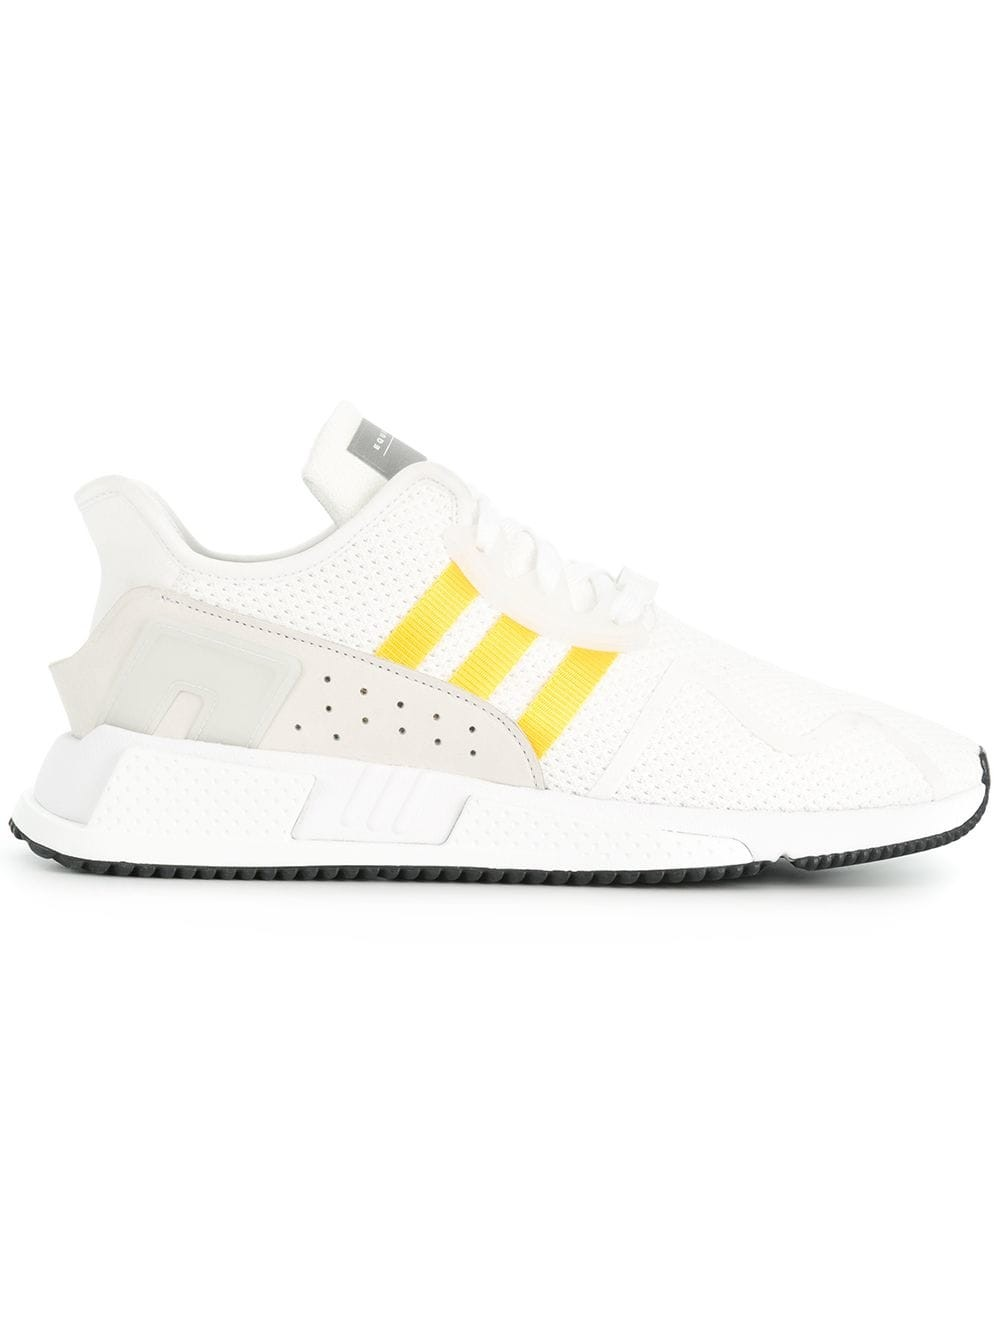 timeless design 491dd 3d53b Adidas EQT Cushion ADV Amarillas Stripes Pack - CQ2375